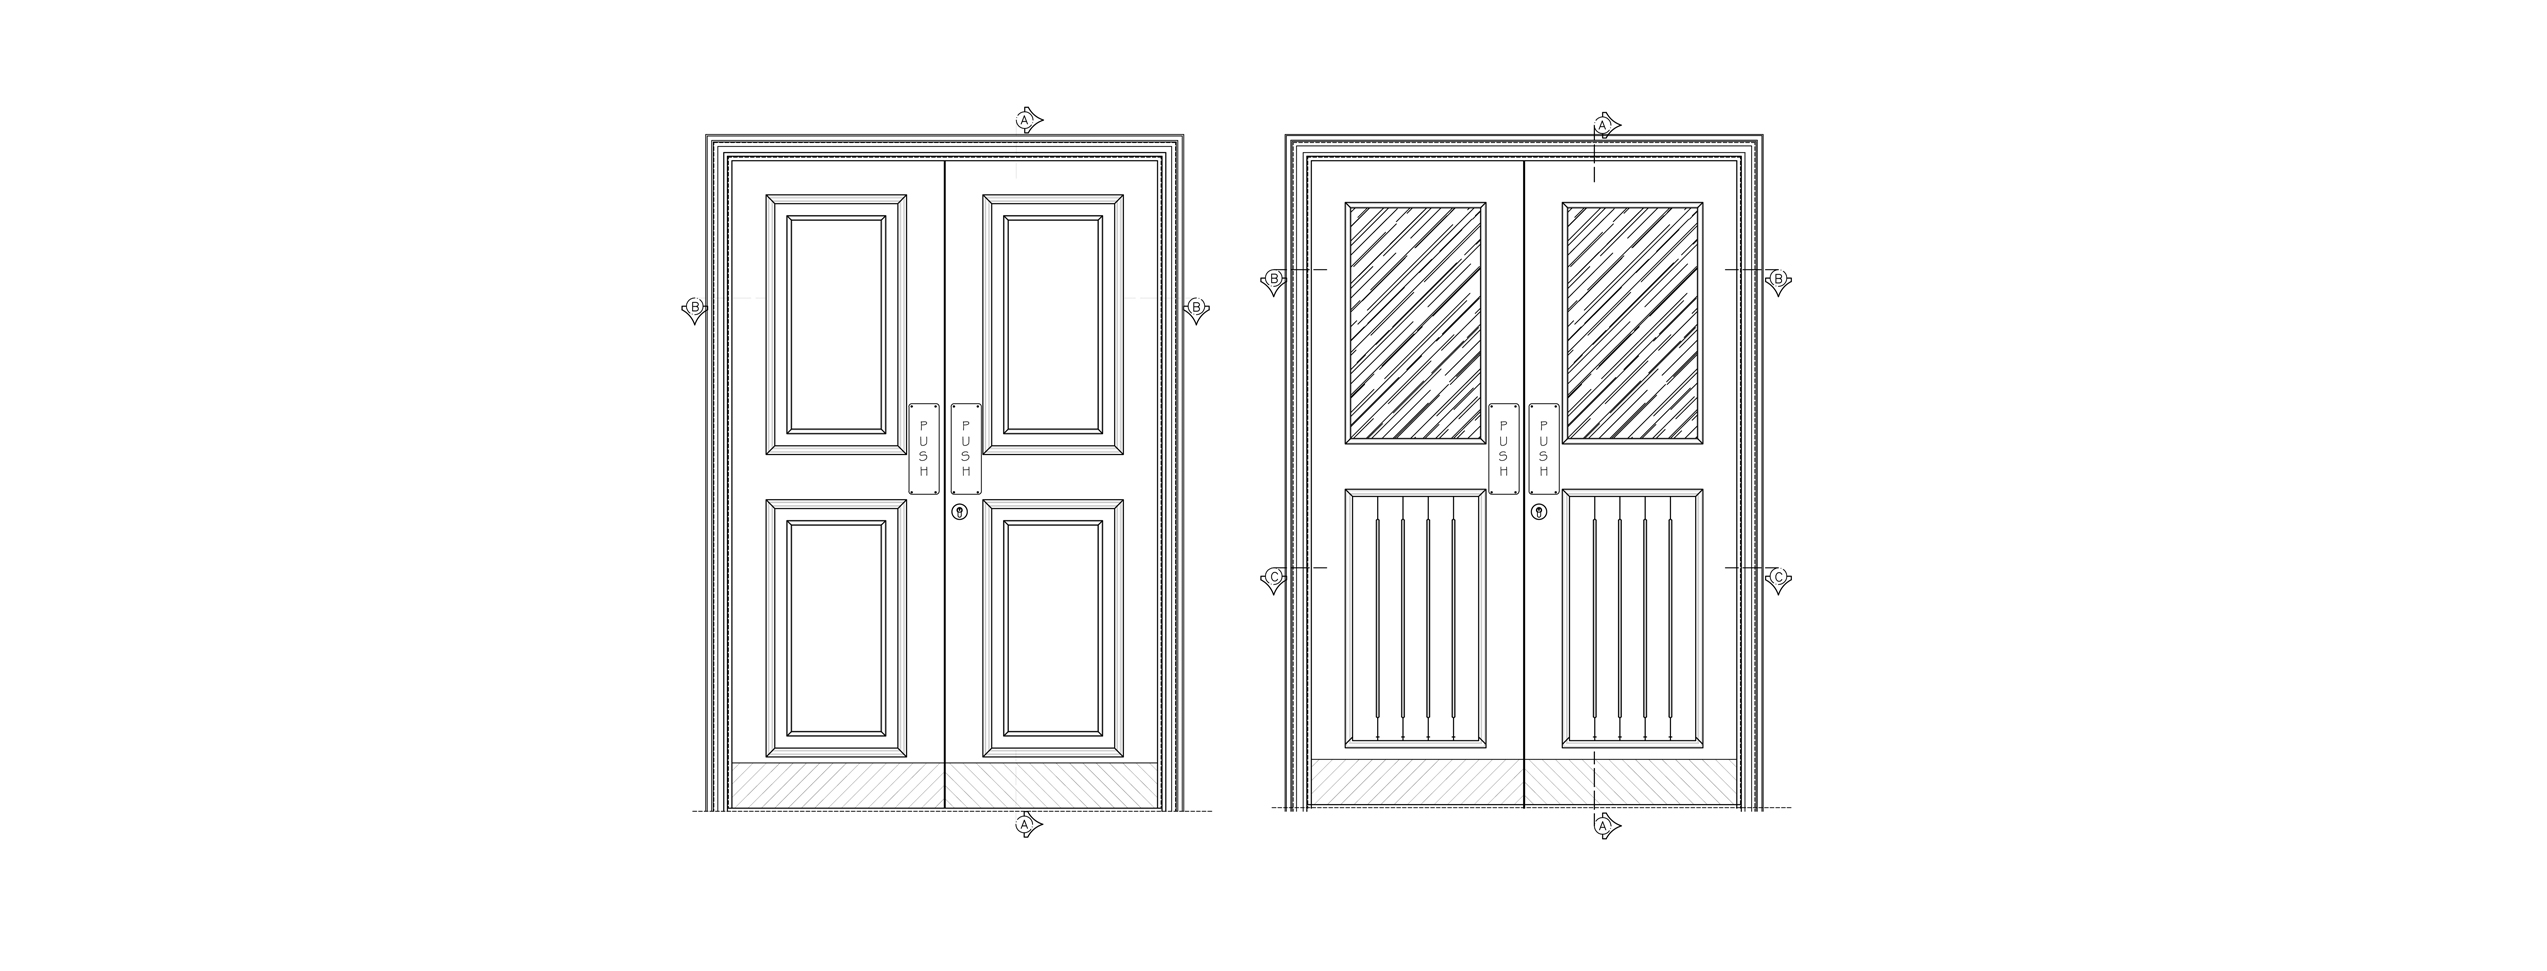 wooden doors cad block free download  sc 1 st  DWG NET & wooden doors cad block with dimension free download